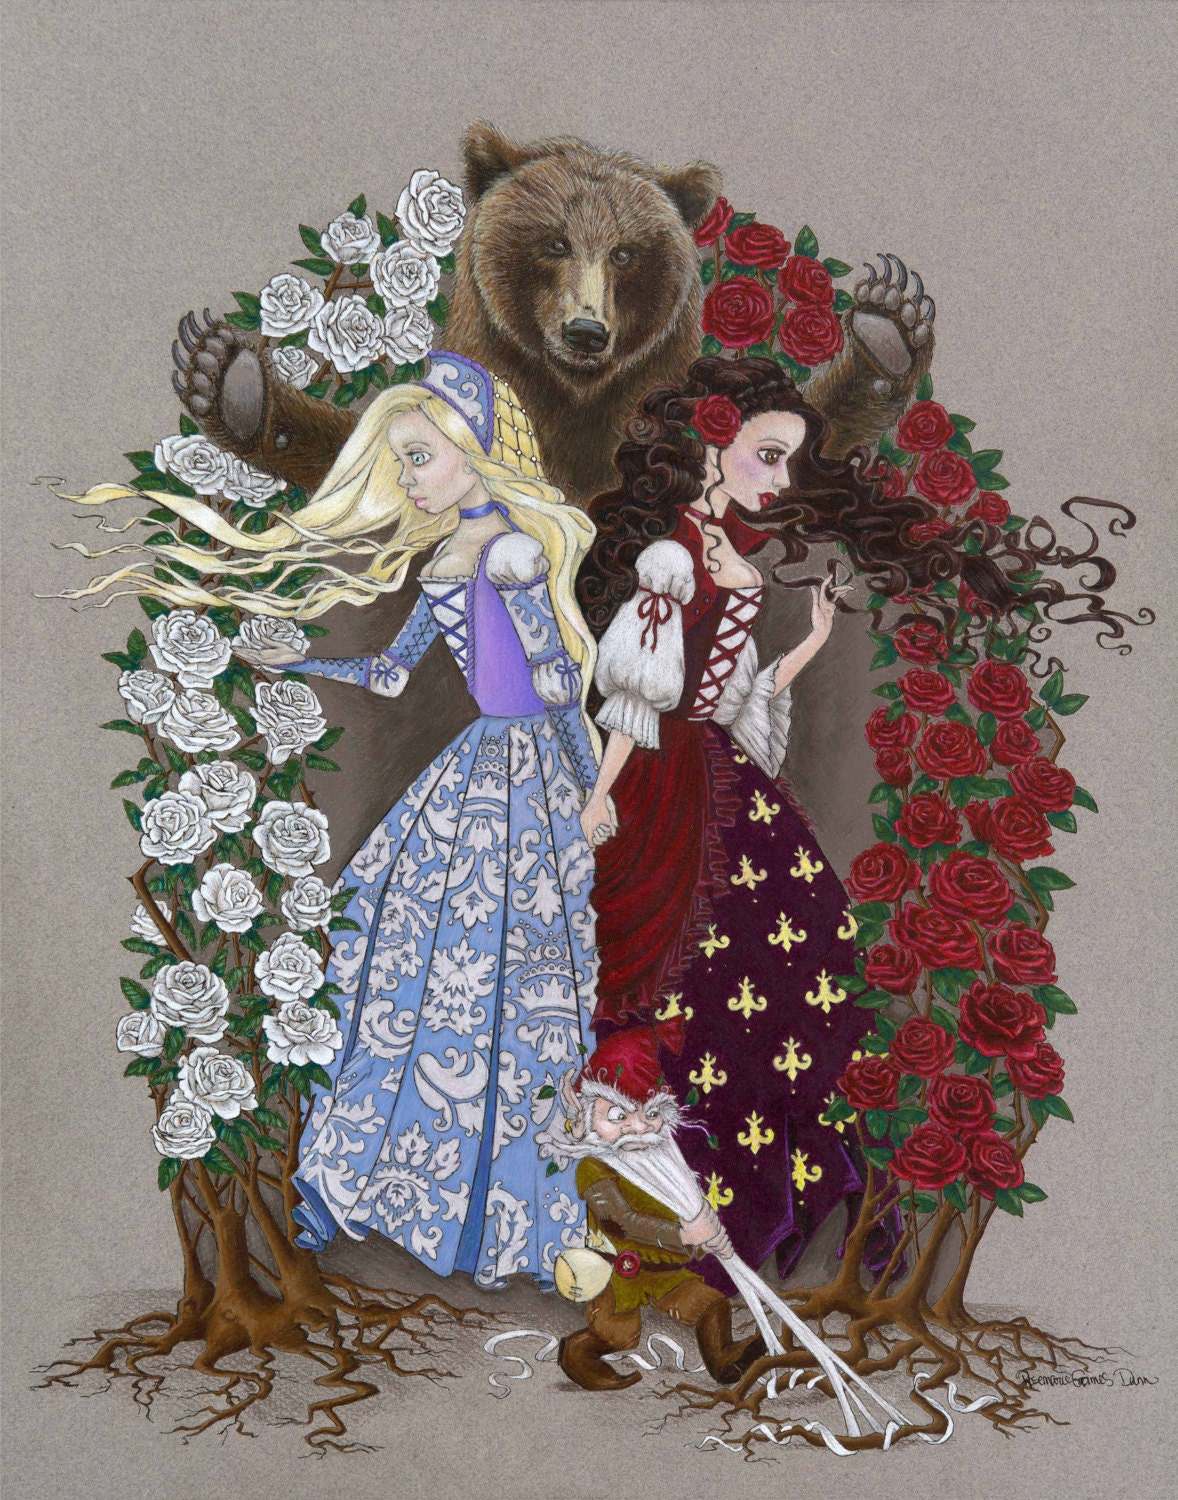 Snow White And Rose Red Fairy Tale Print